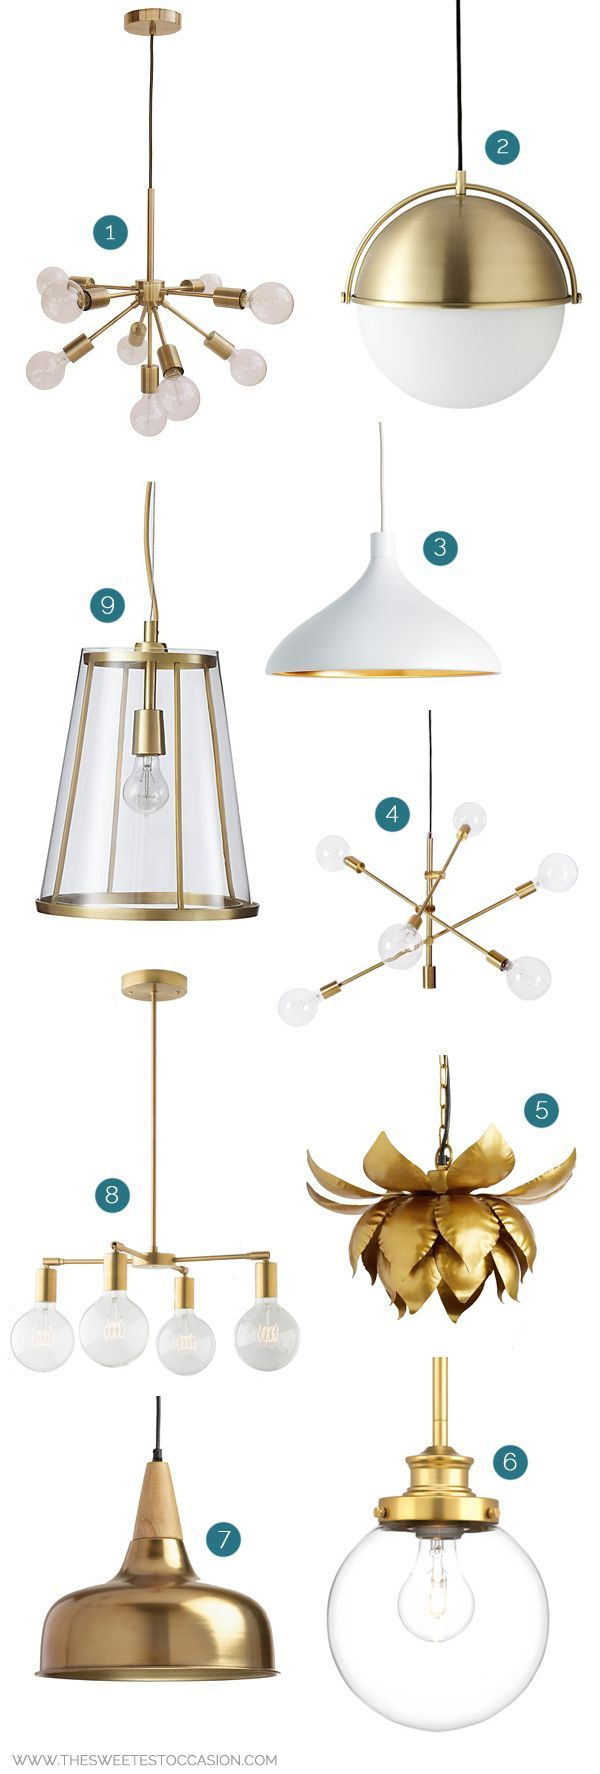 Your home improvements refference floor to ceiling room iders - 9 Awesome Brass Light Fixtures On A Budget Under 350 And Other Home Improvement